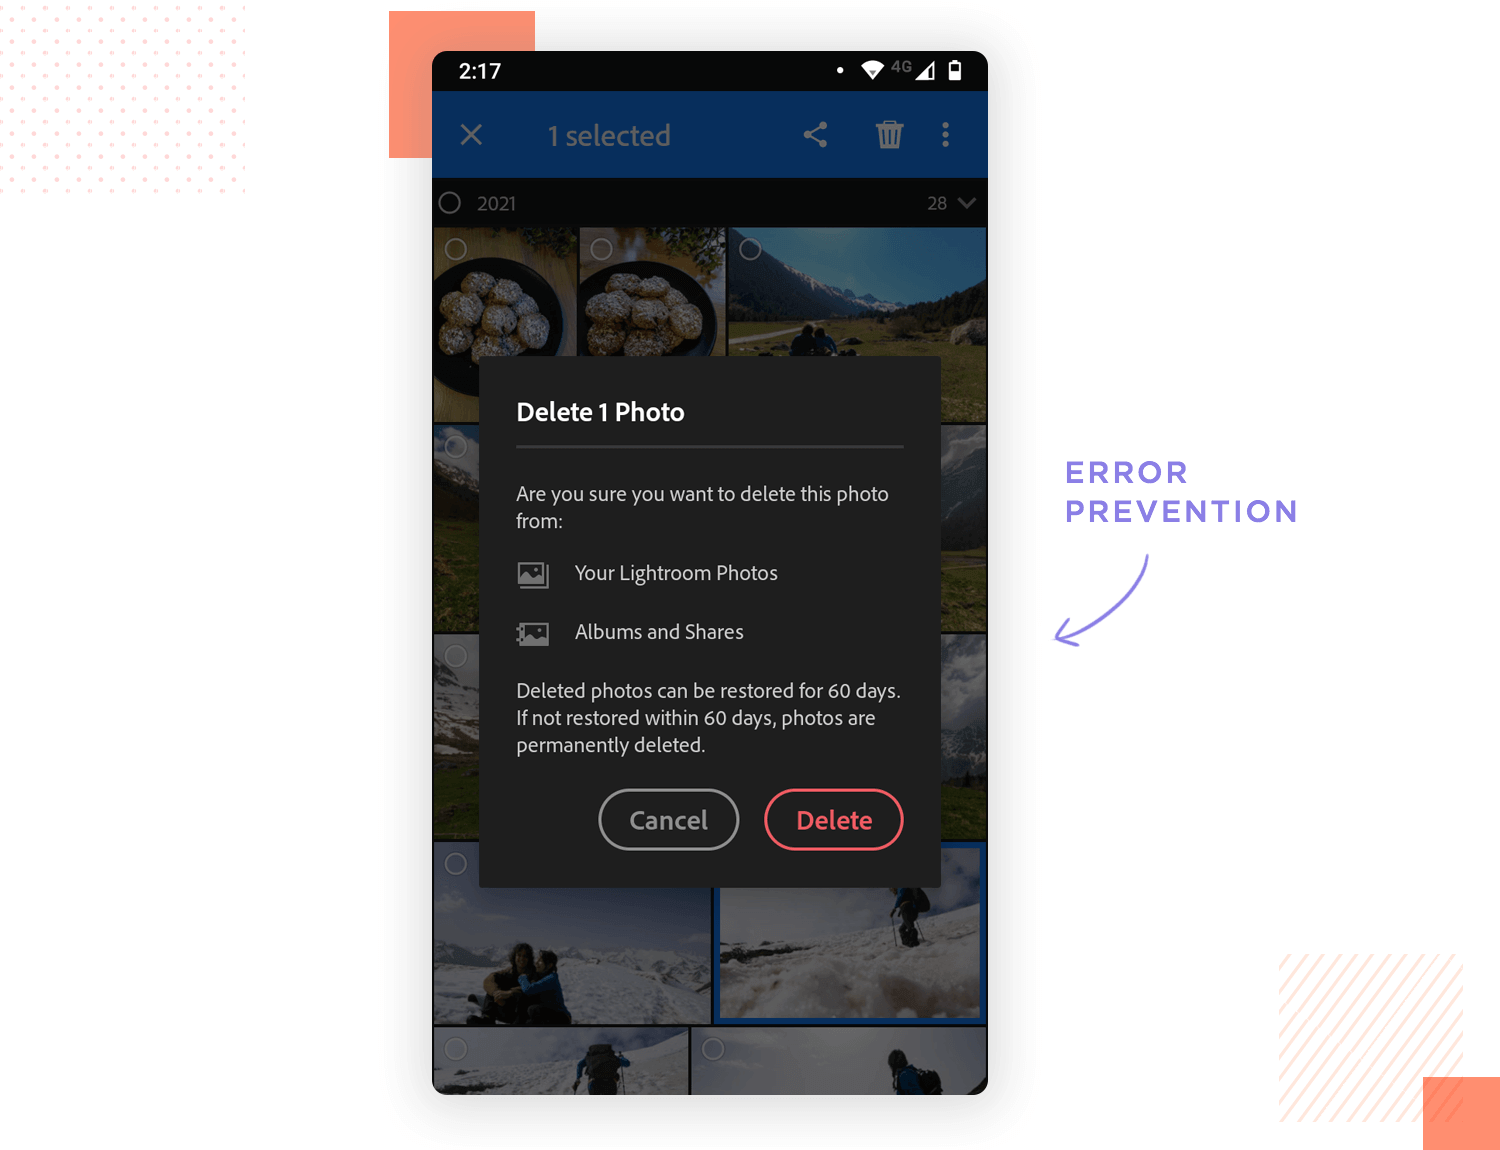 error prevention as example of ux design heuristic